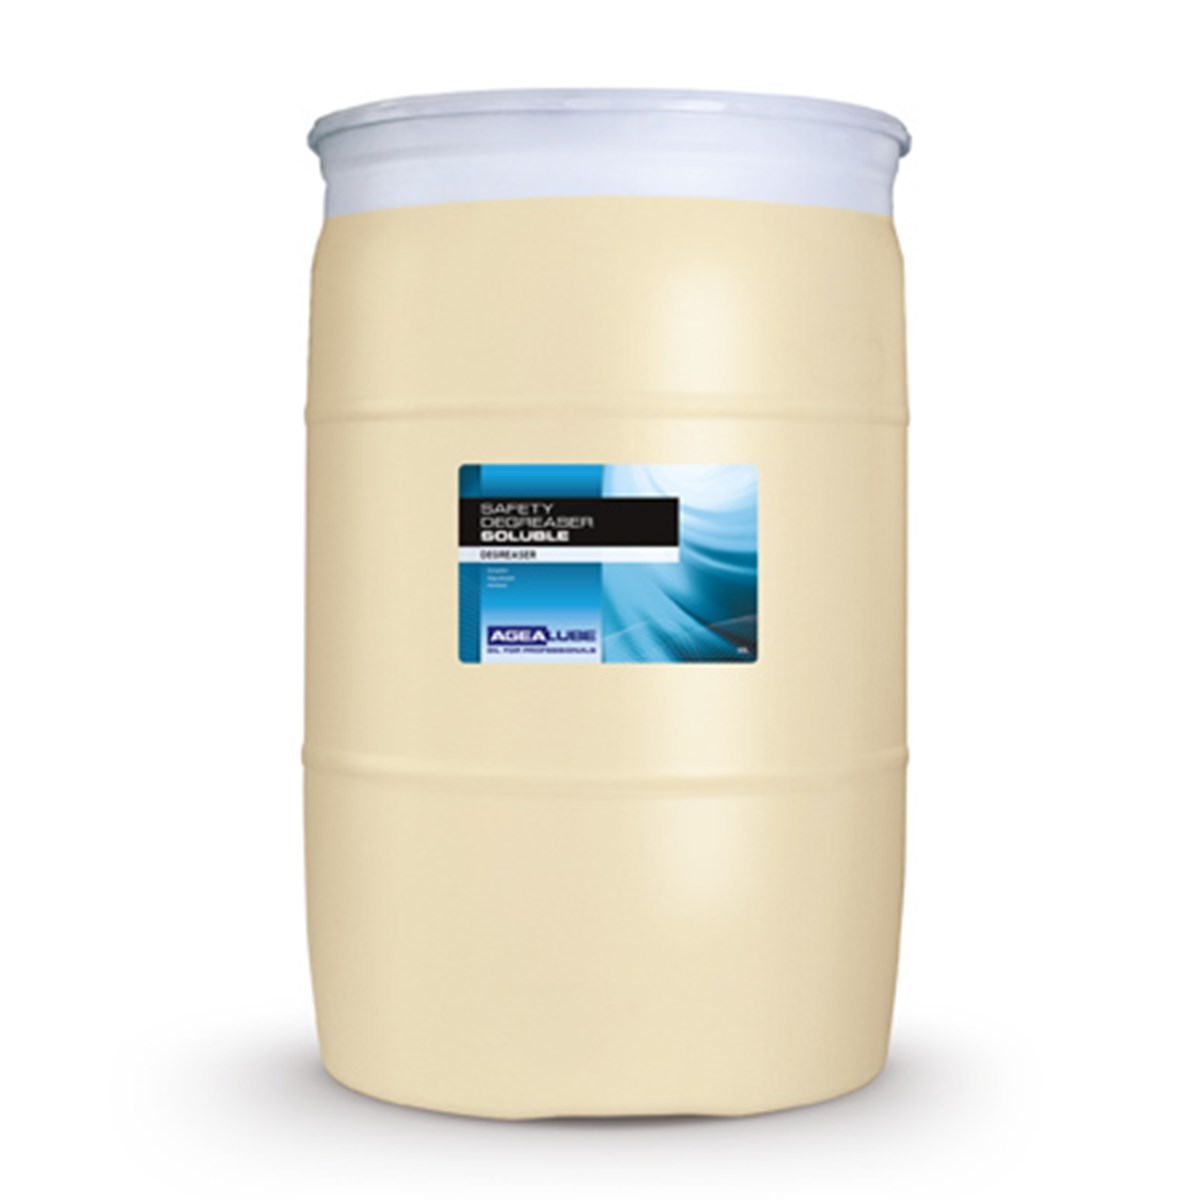 Agealube safety degreaser soluble 60l